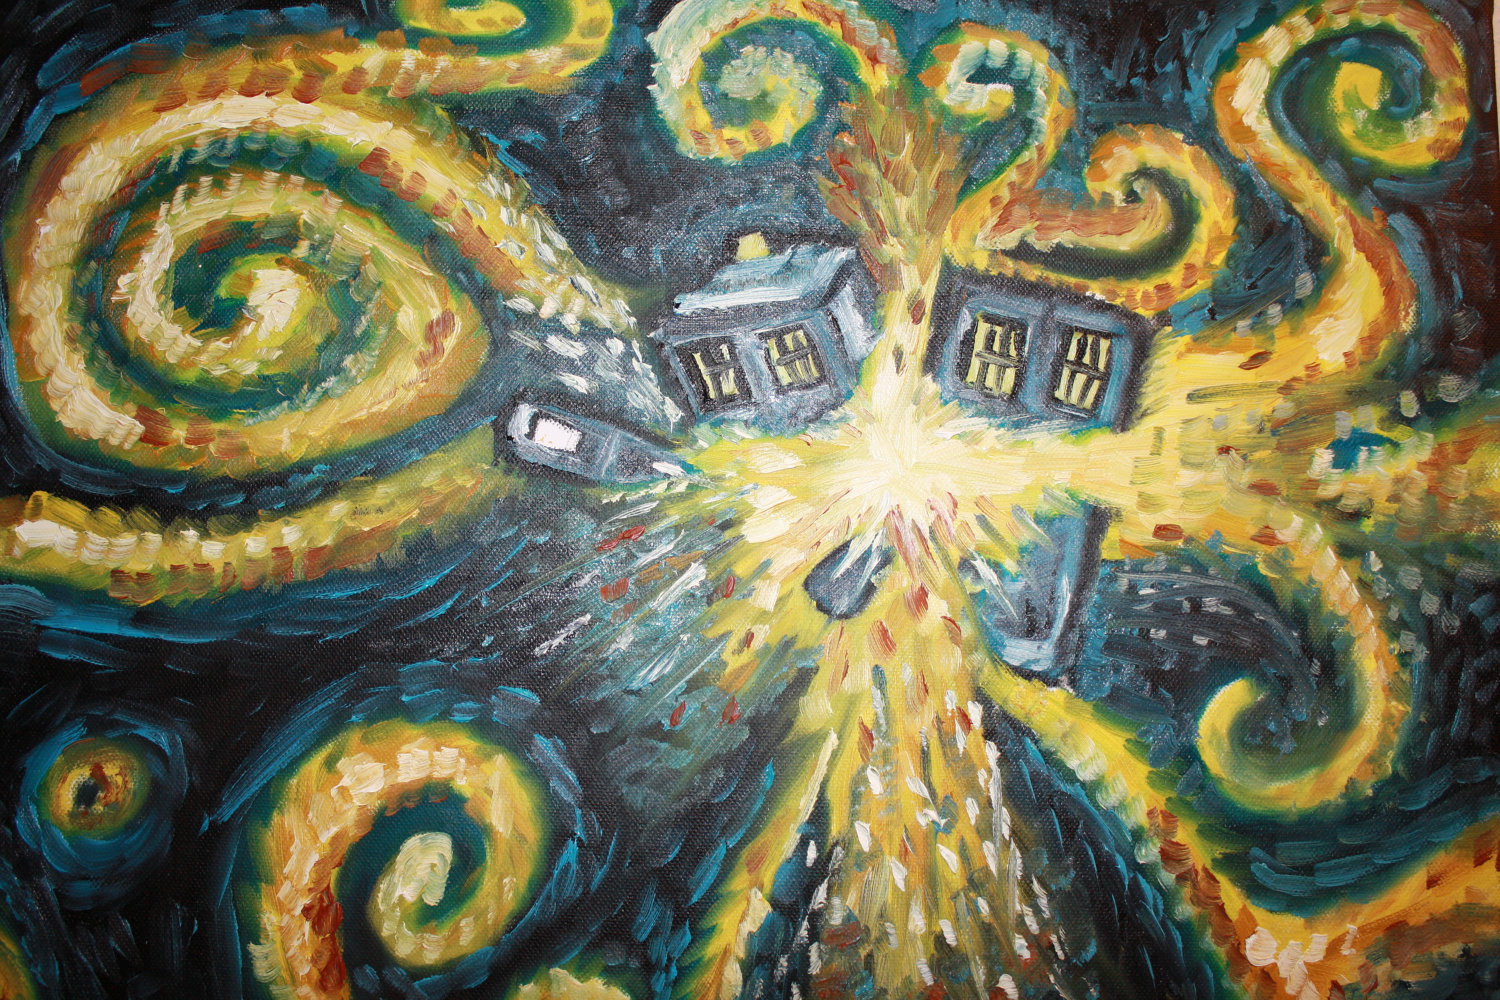 Free Download Tardis Vincent Van Gogh Doctor Who Starry Night